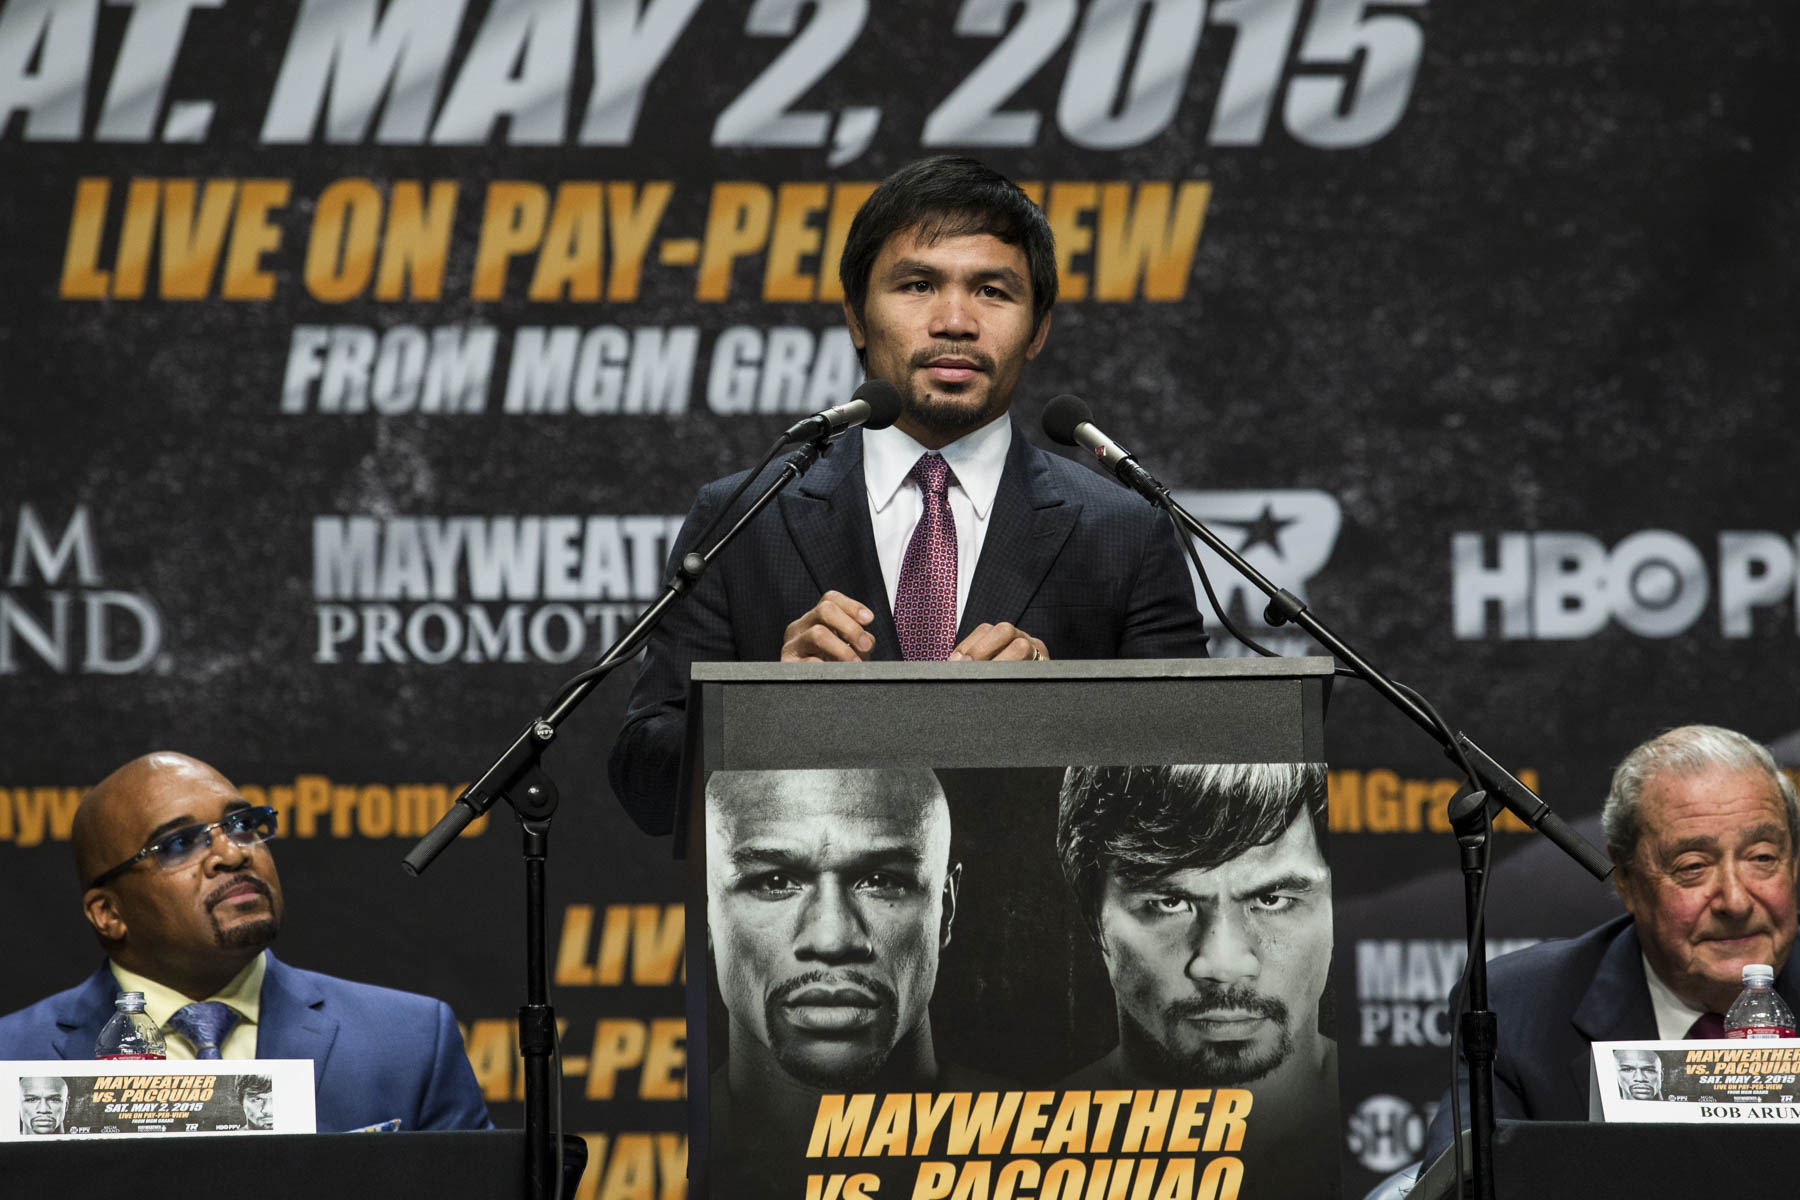 Mayweather vs. Pacquiao: The Fight of the Century – THE PEACH REVIEW®